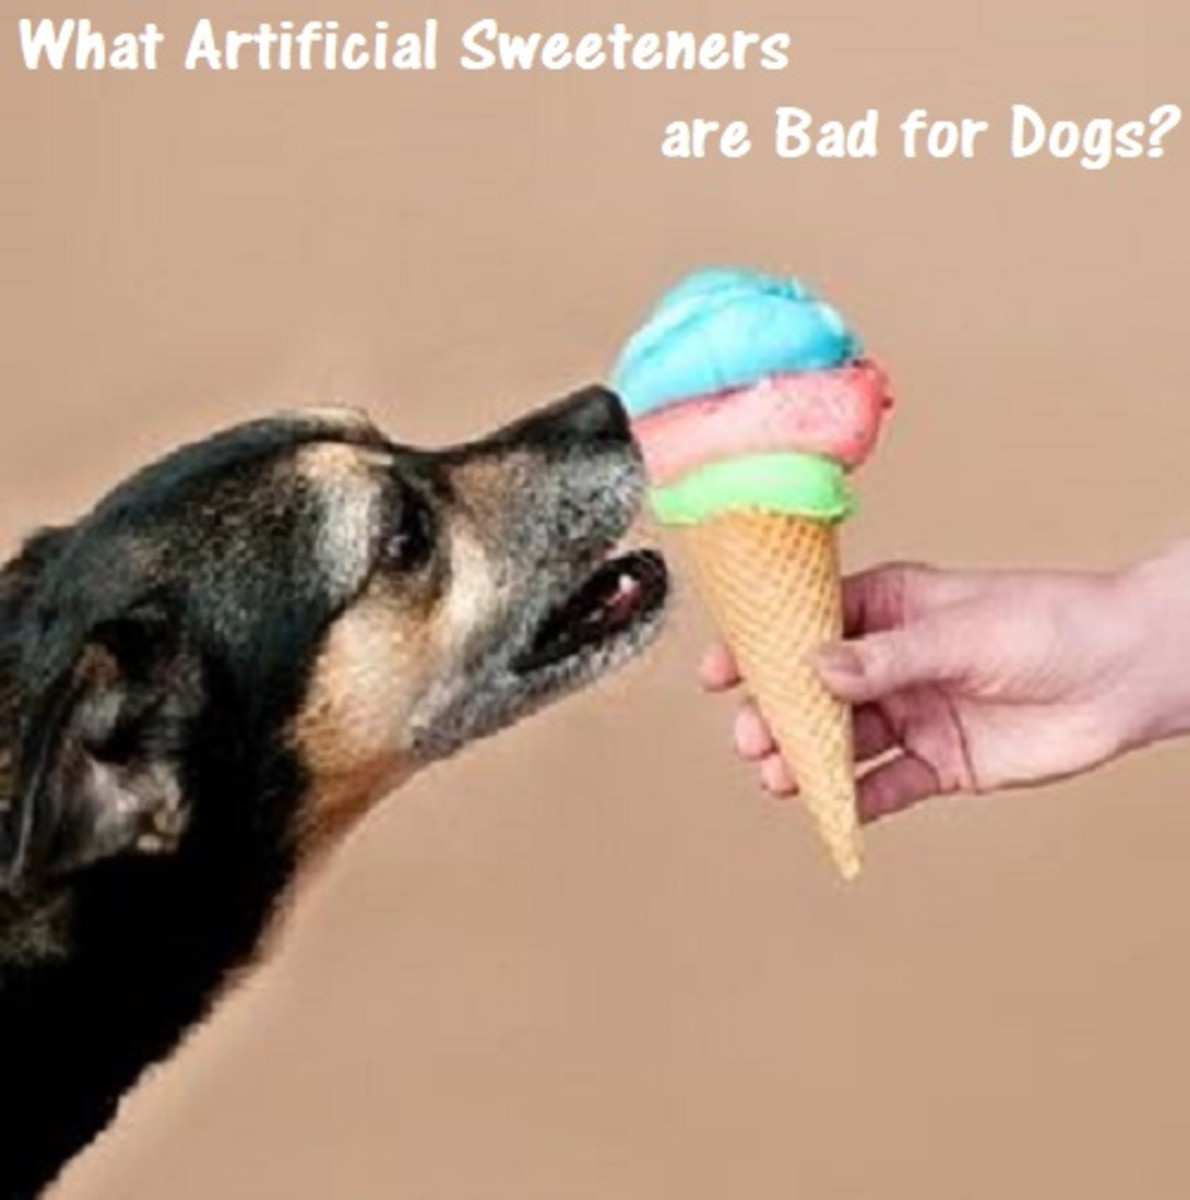 Are Artificial Sweeteners Bad For Dogs?